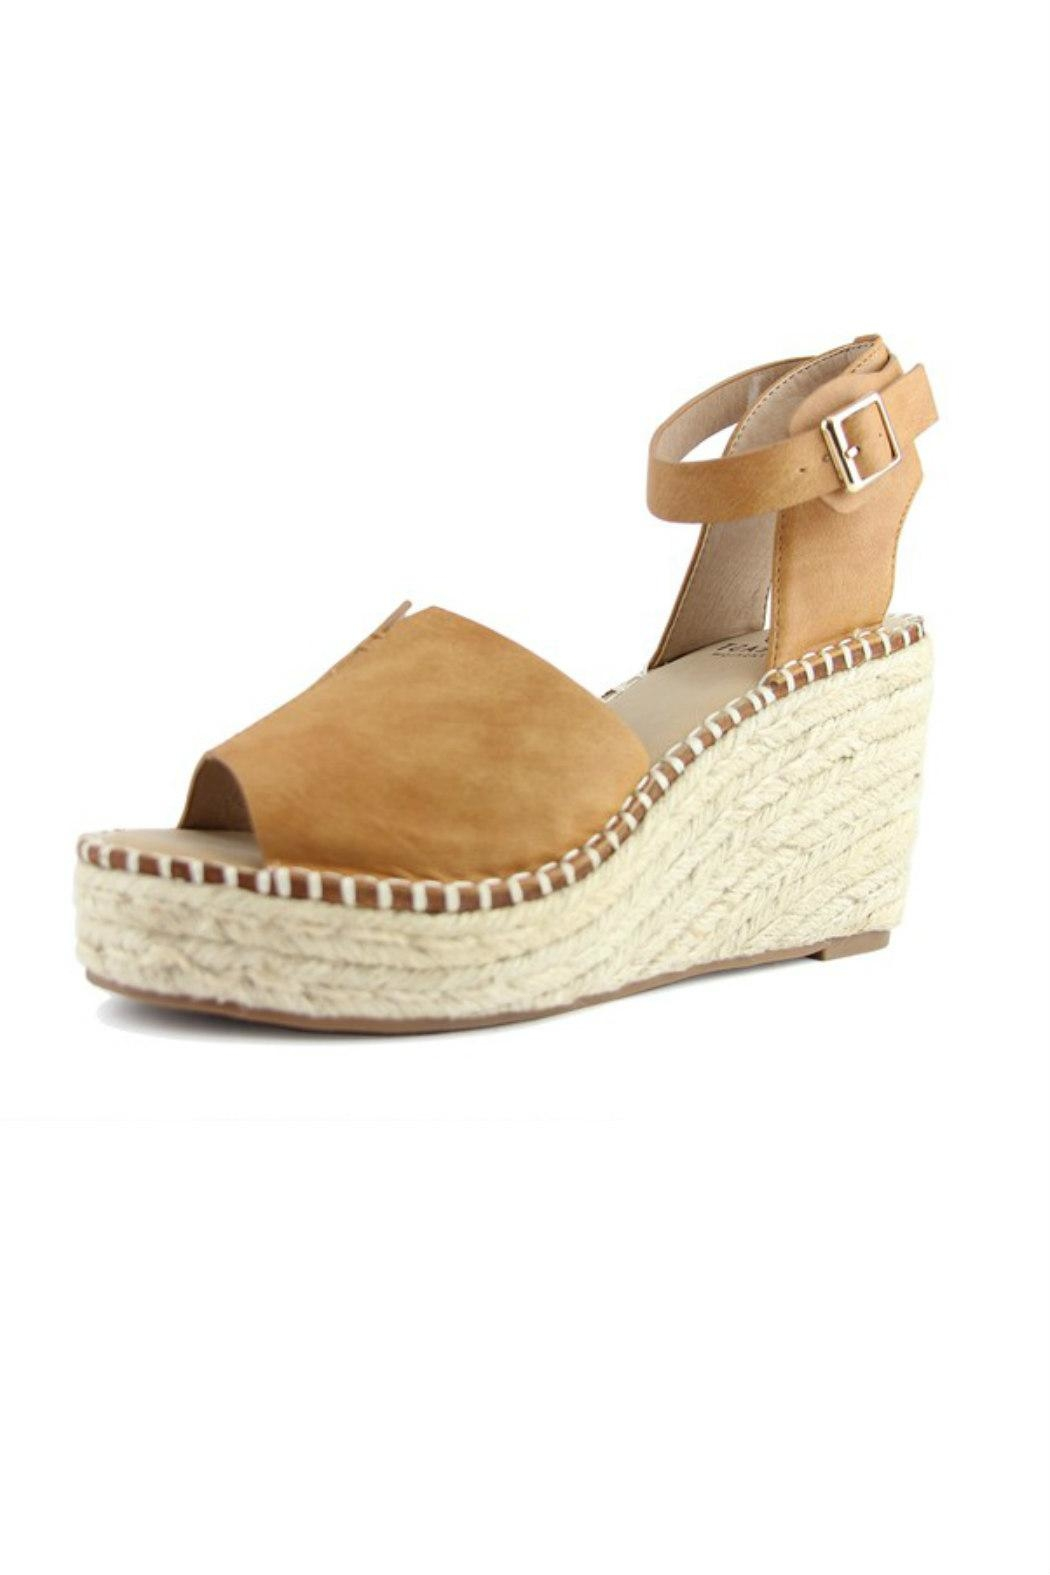 Beast Fashion Berlin Ankle-Wrap Wedge - Front Full Image